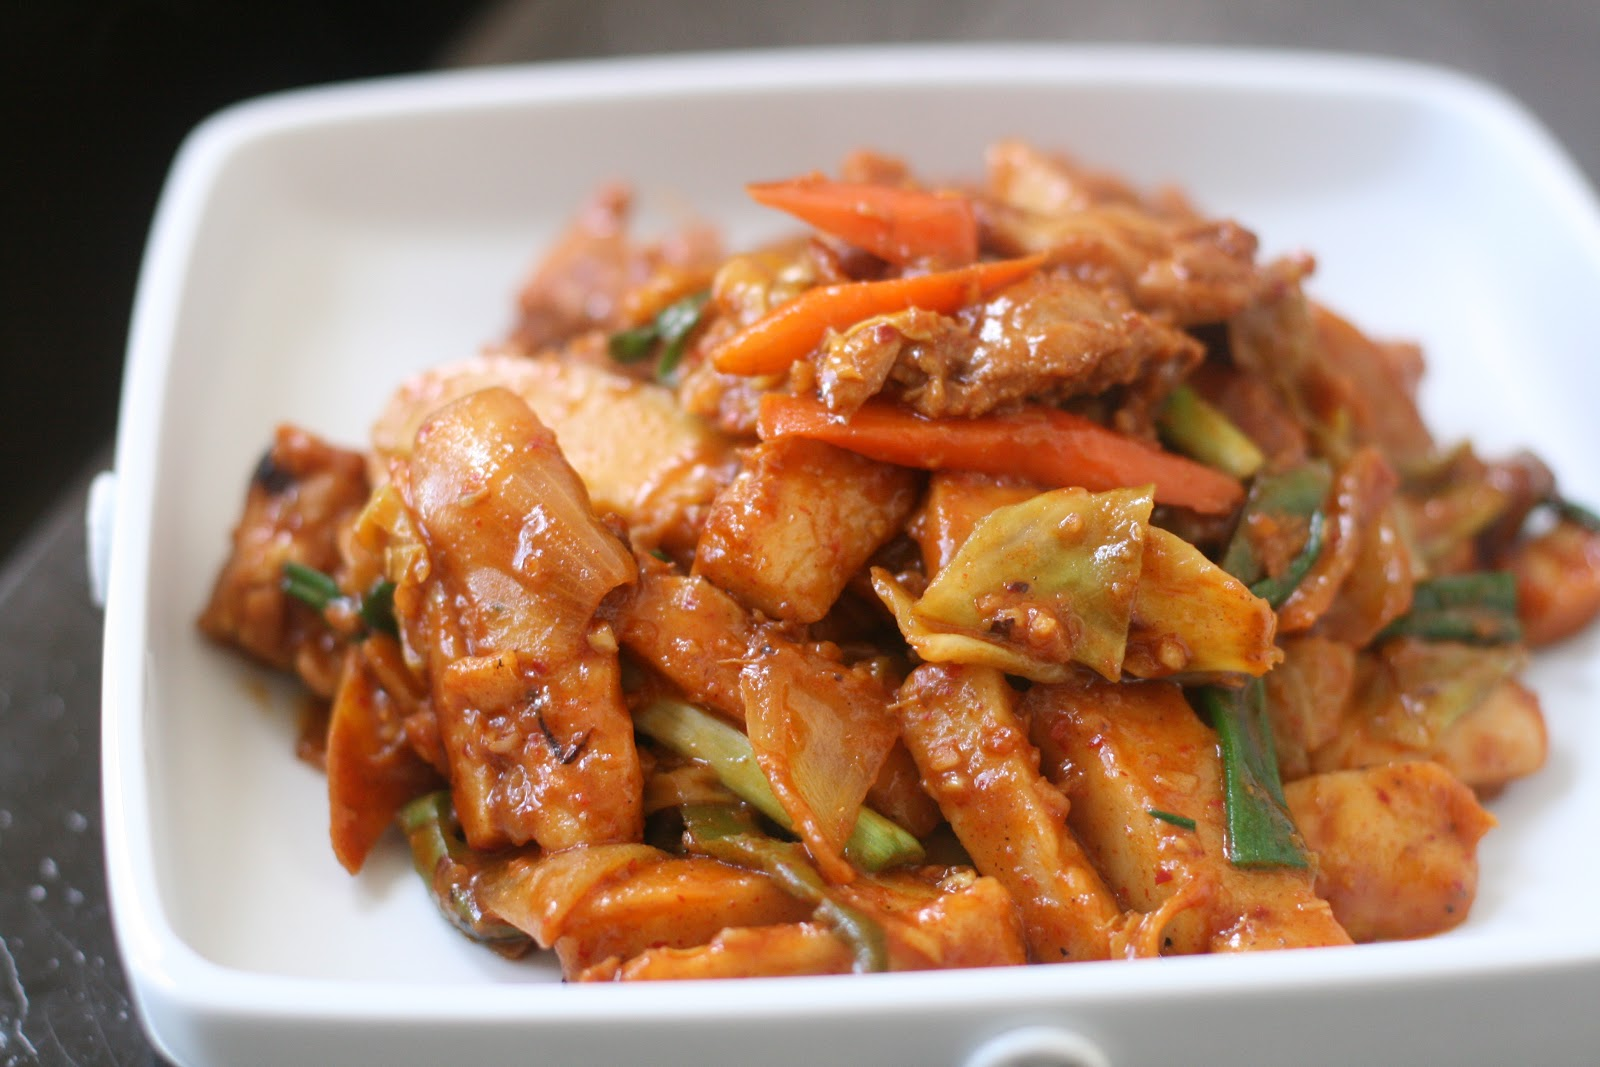 Korean spicy chicken stir fry or beethoven and art korean spicy chicken stir fry or beethoven and art forumfinder Image collections